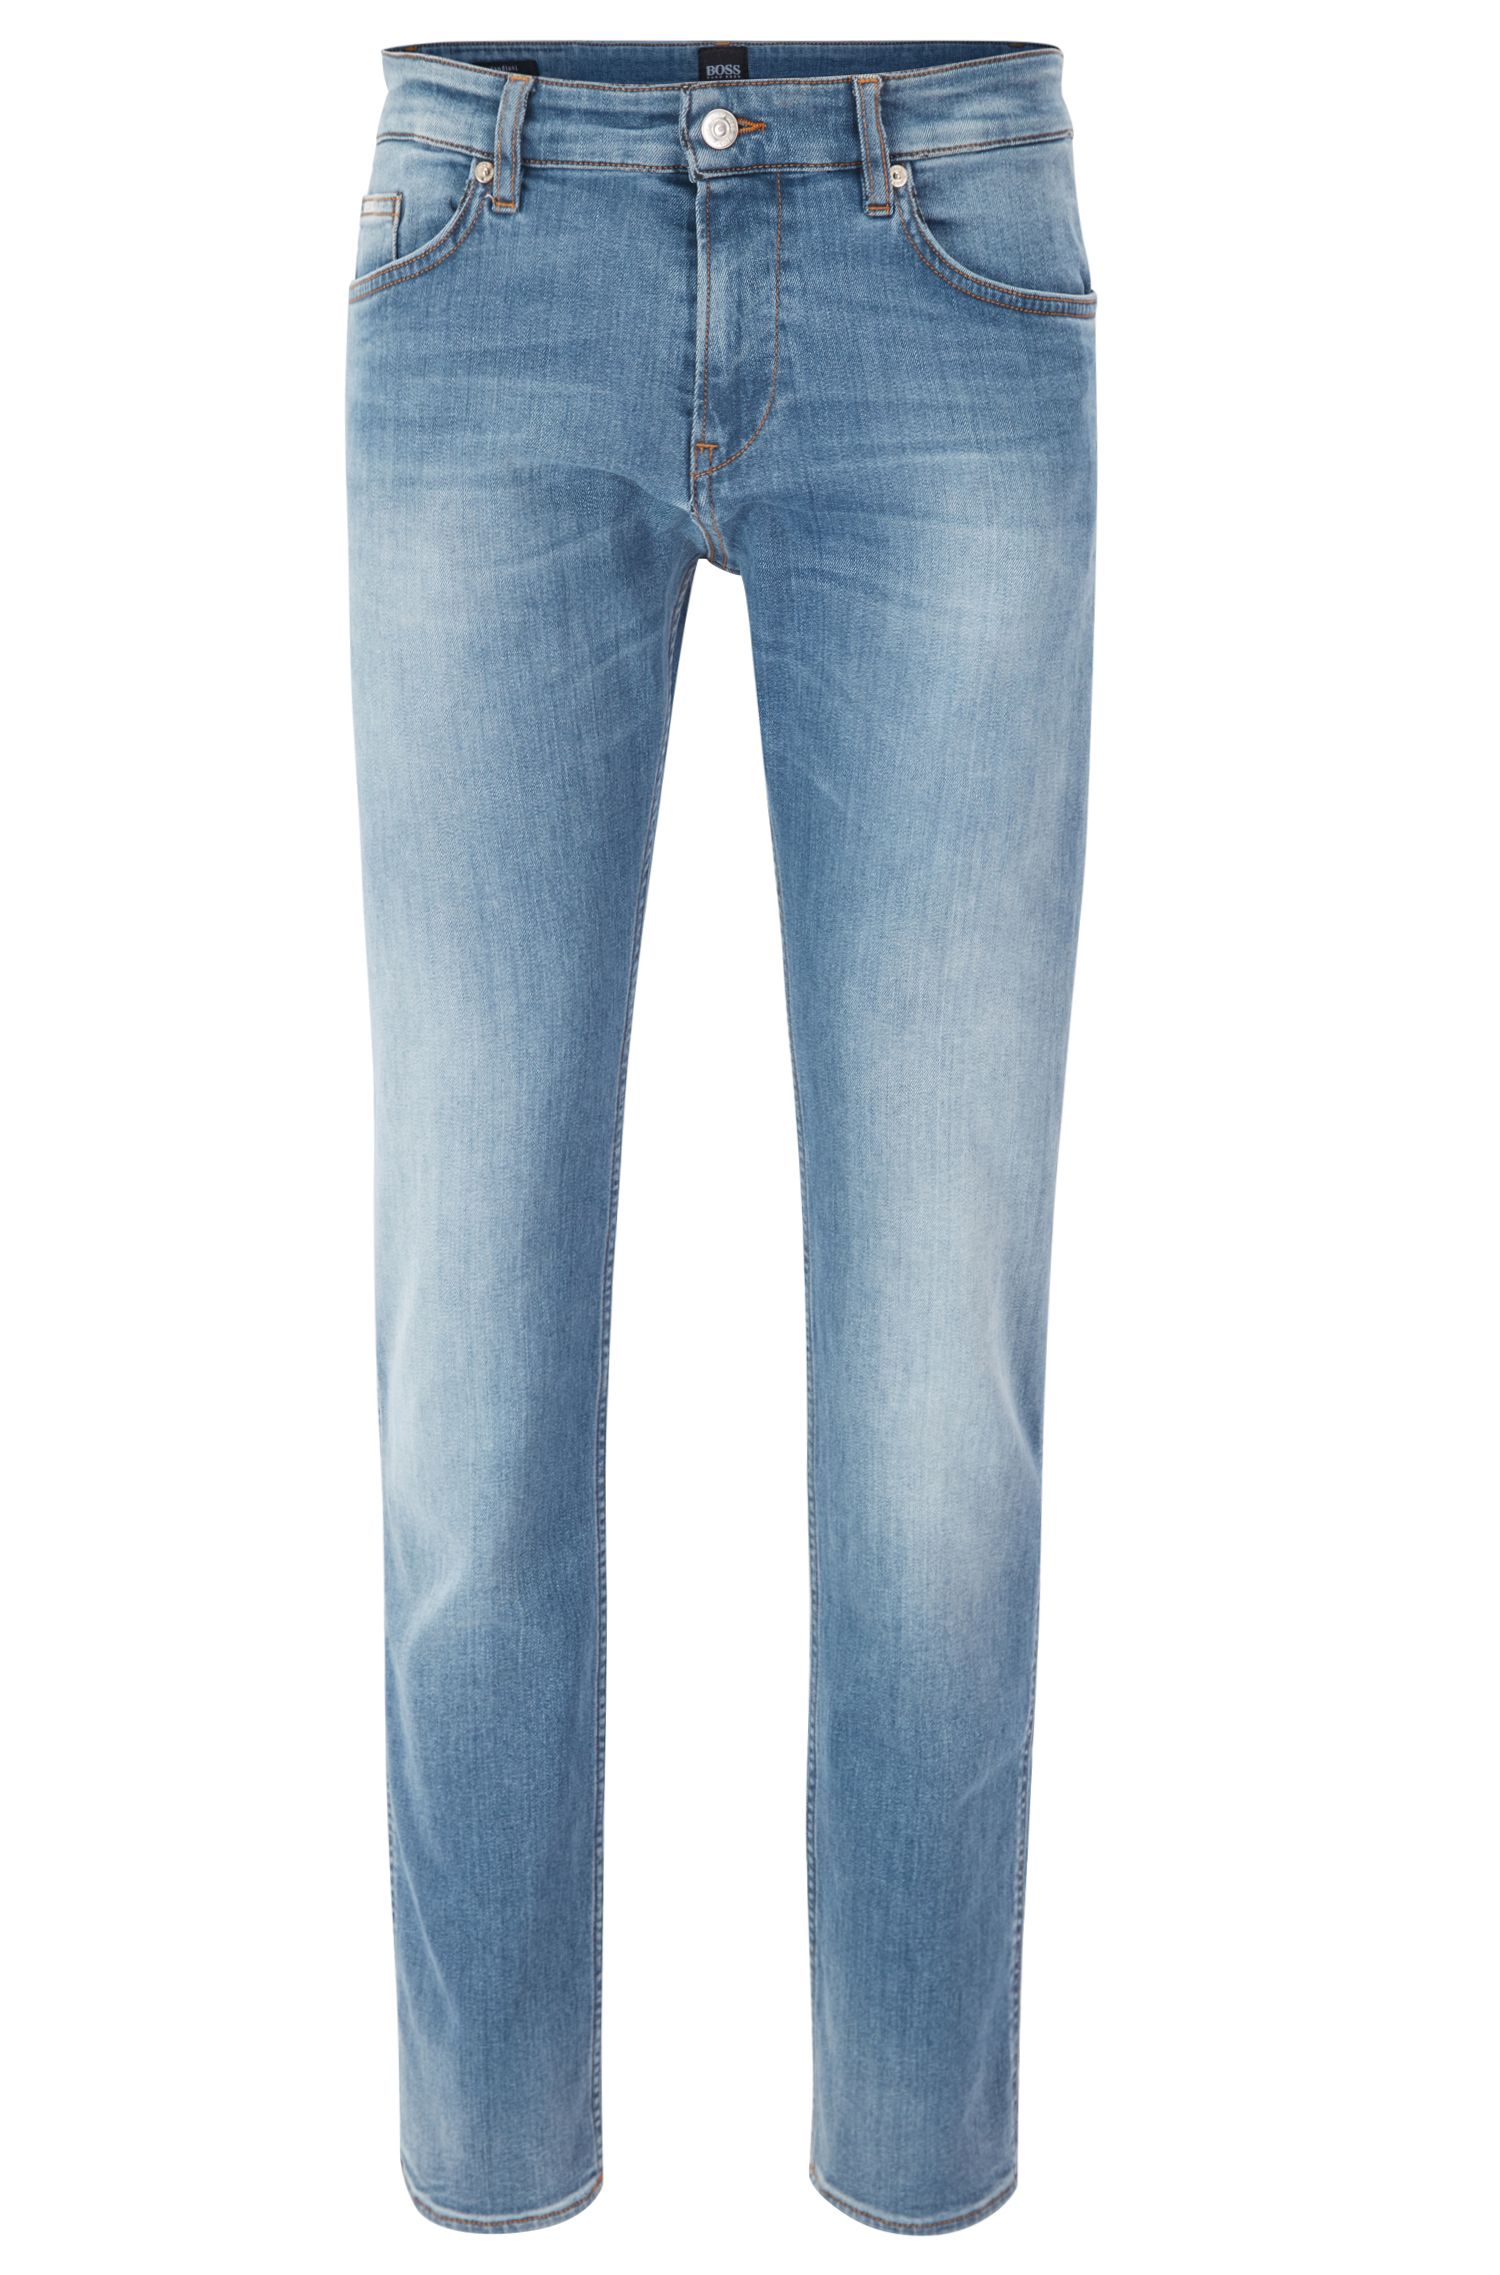 Jean Slim Fit en denim stretch italien bleu moyen